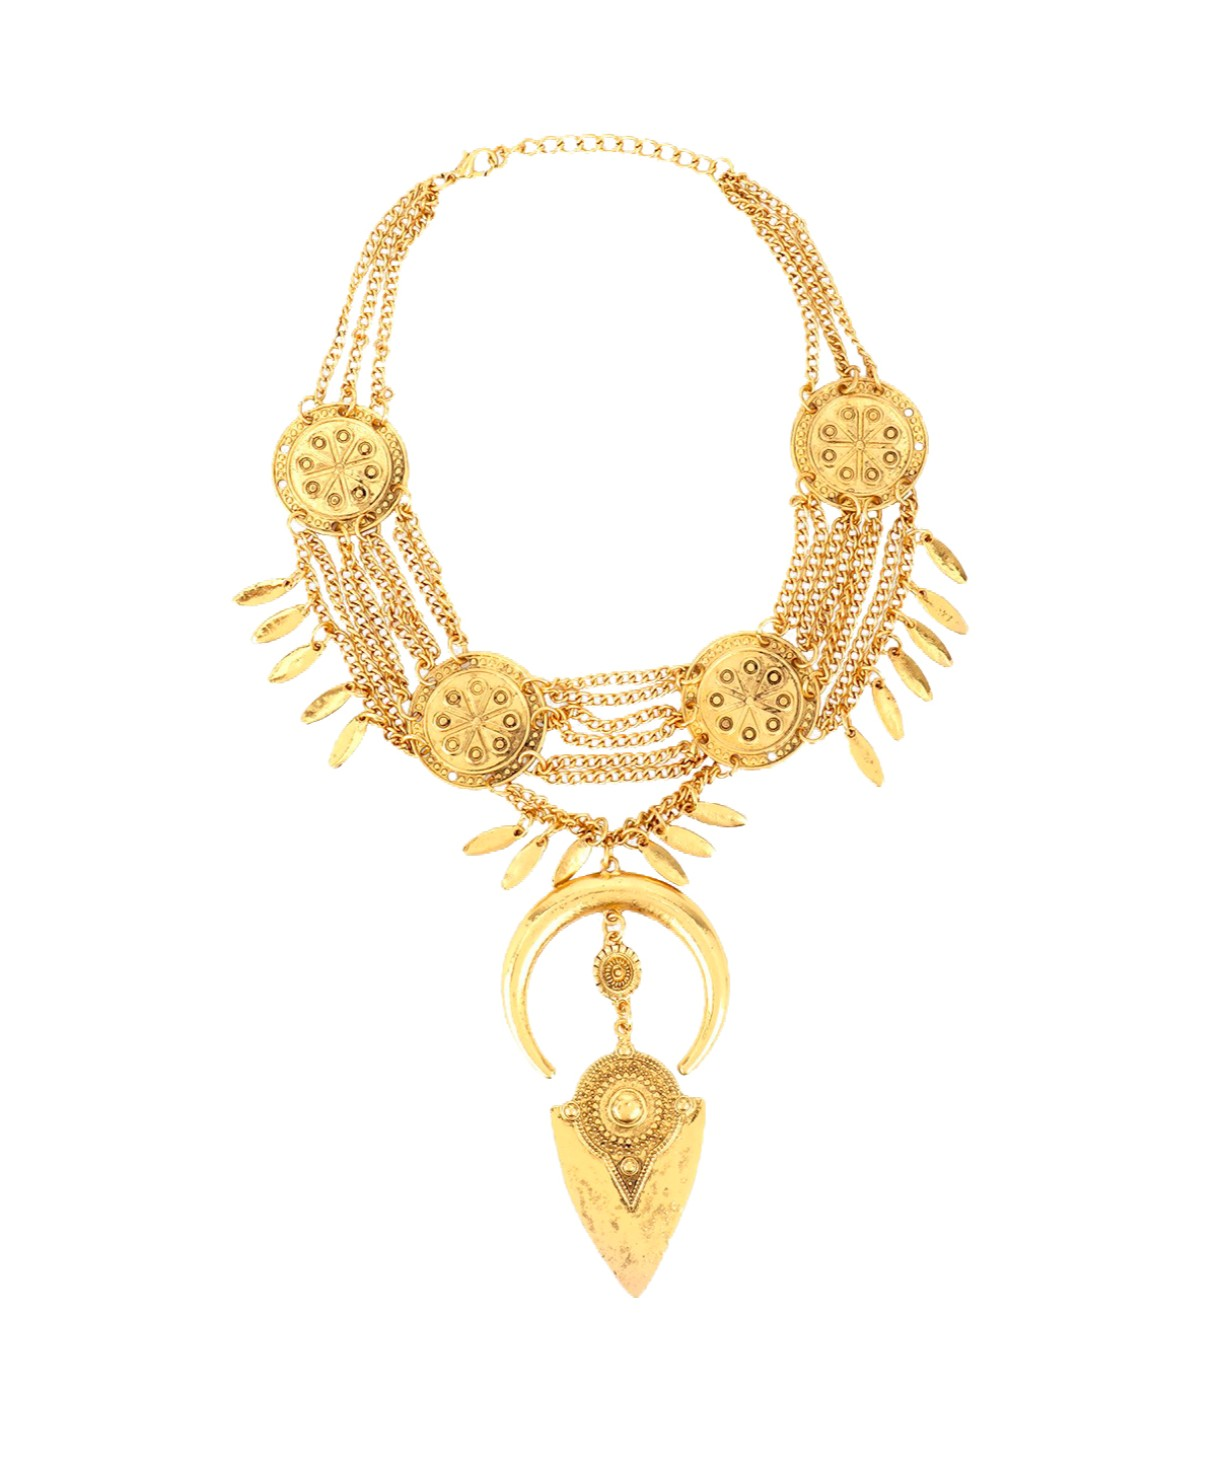 Warrior Gold Necklace - Uptownie